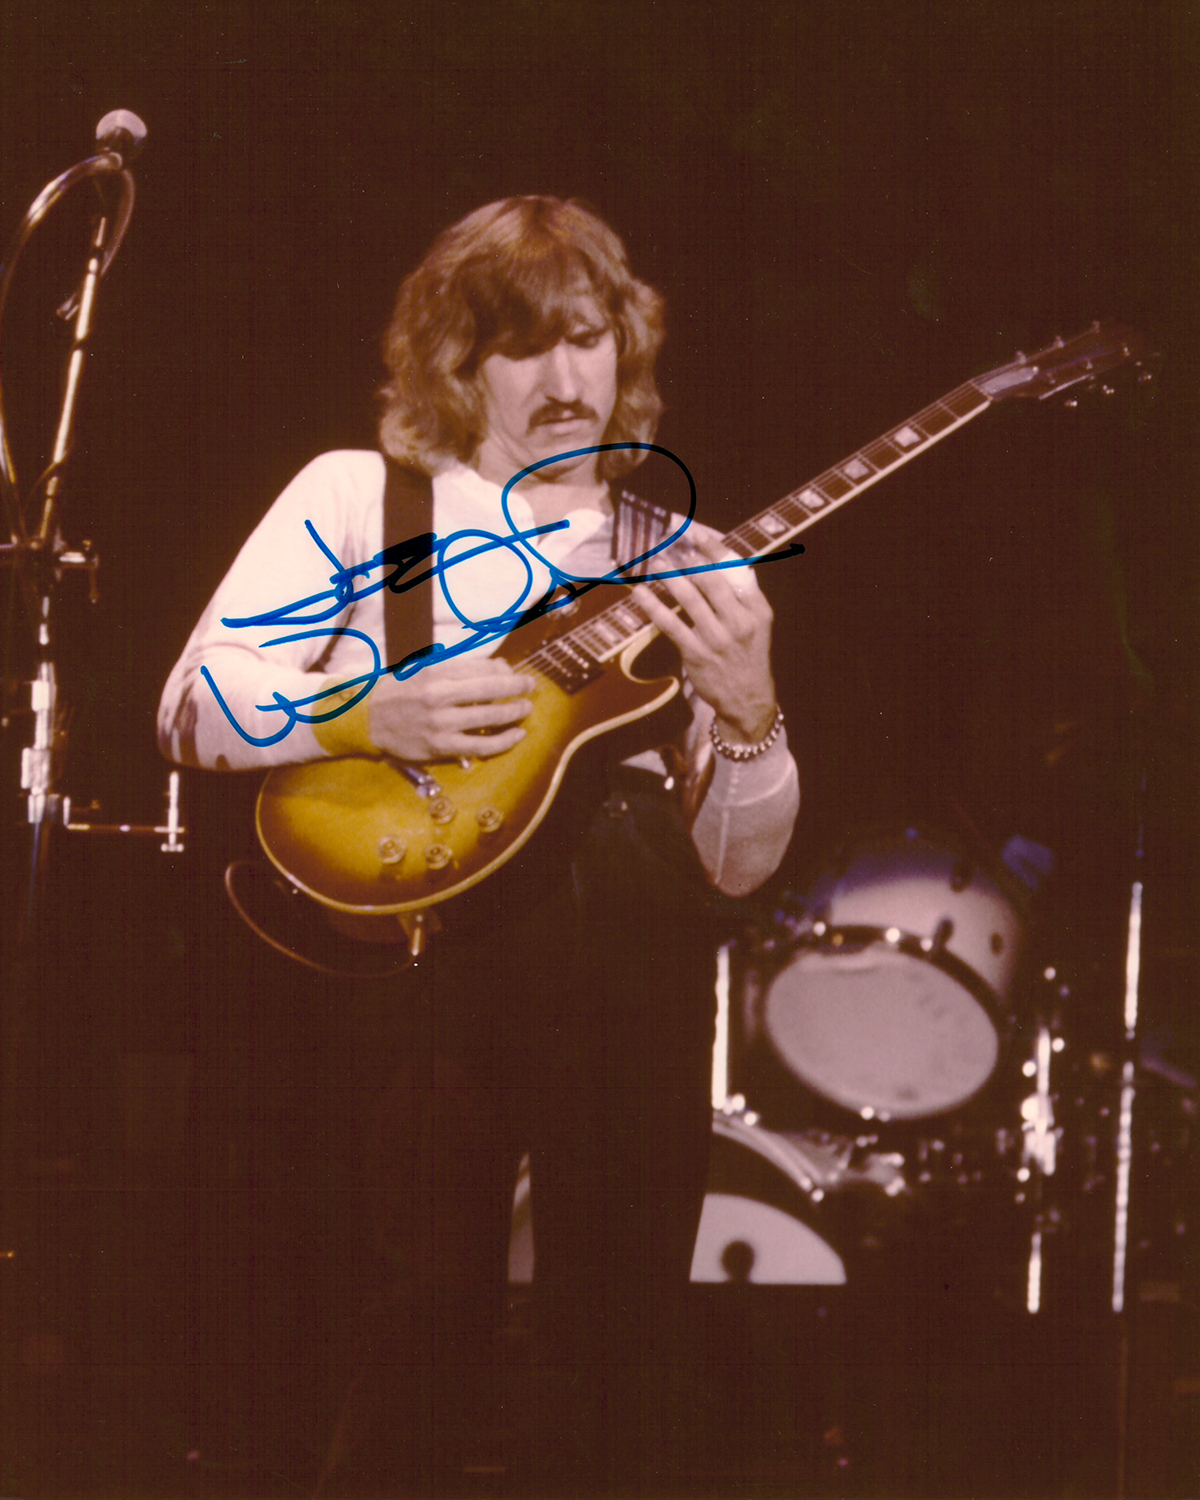 Joe Walsh photo #4